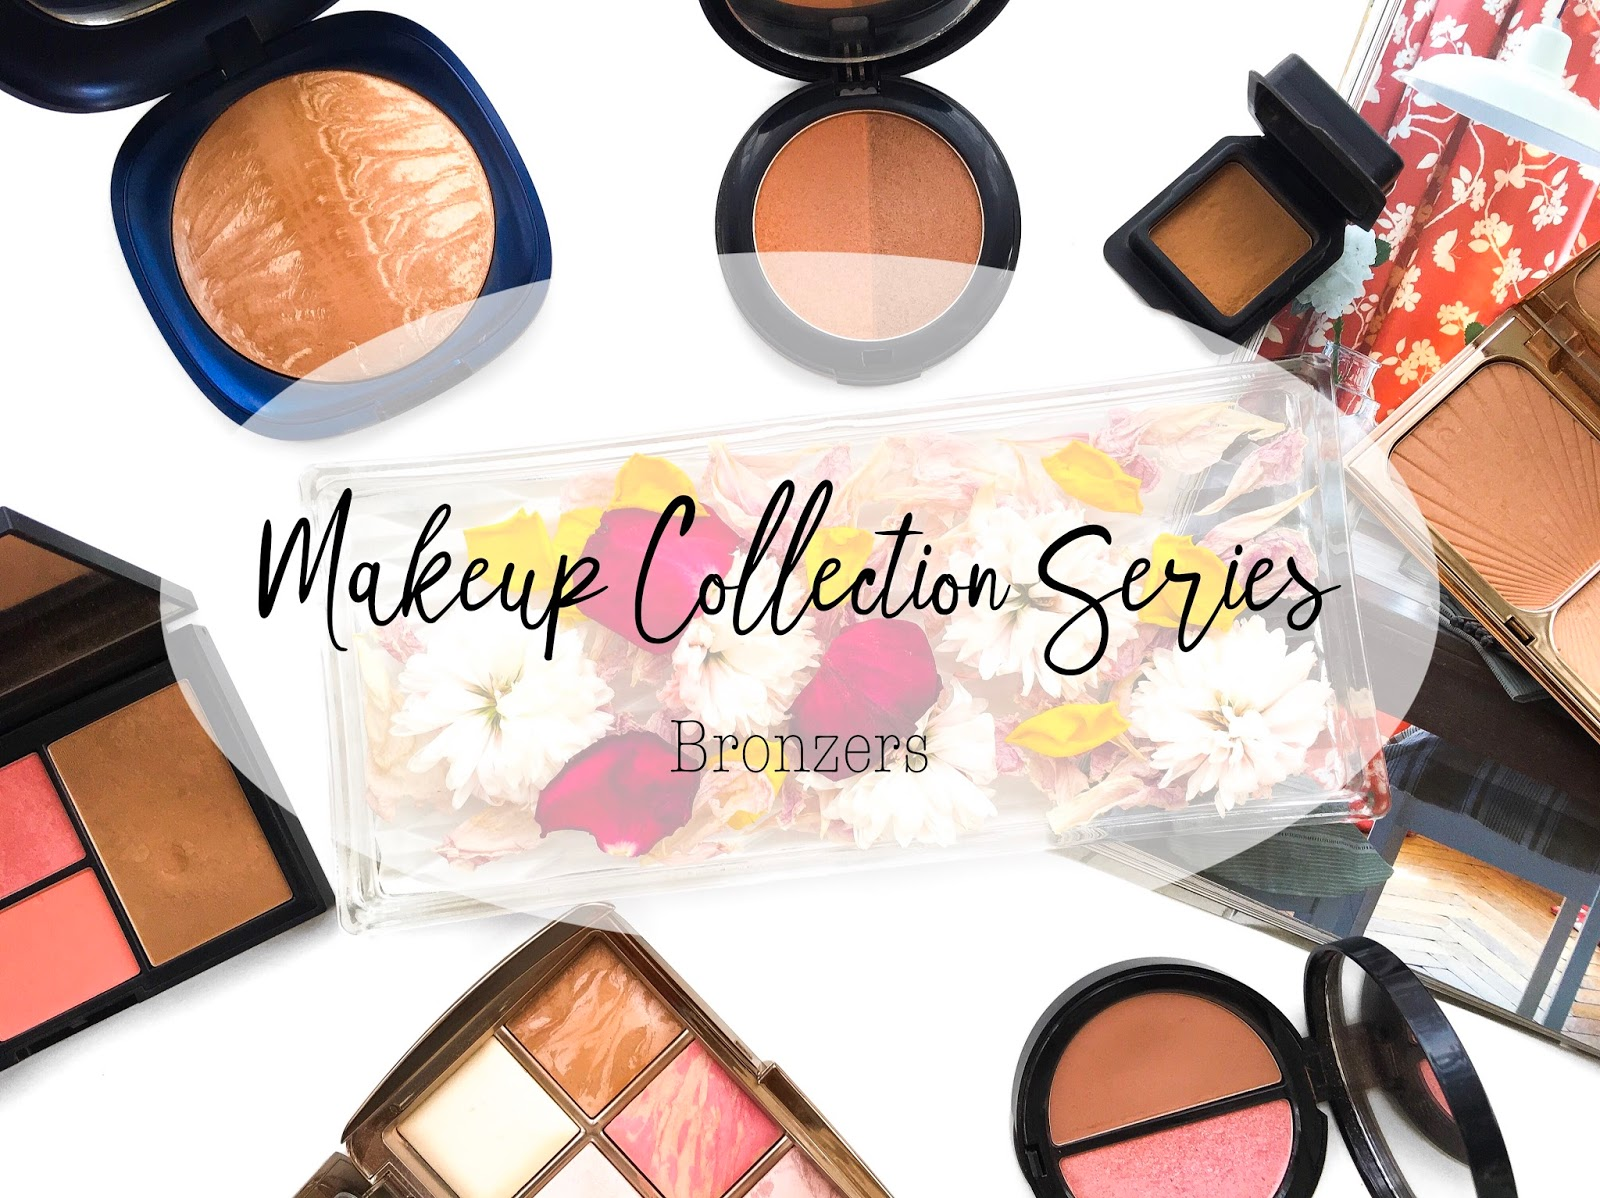 ummbaby makeup collection, makeup collection, makeup collection series, bronzer collection